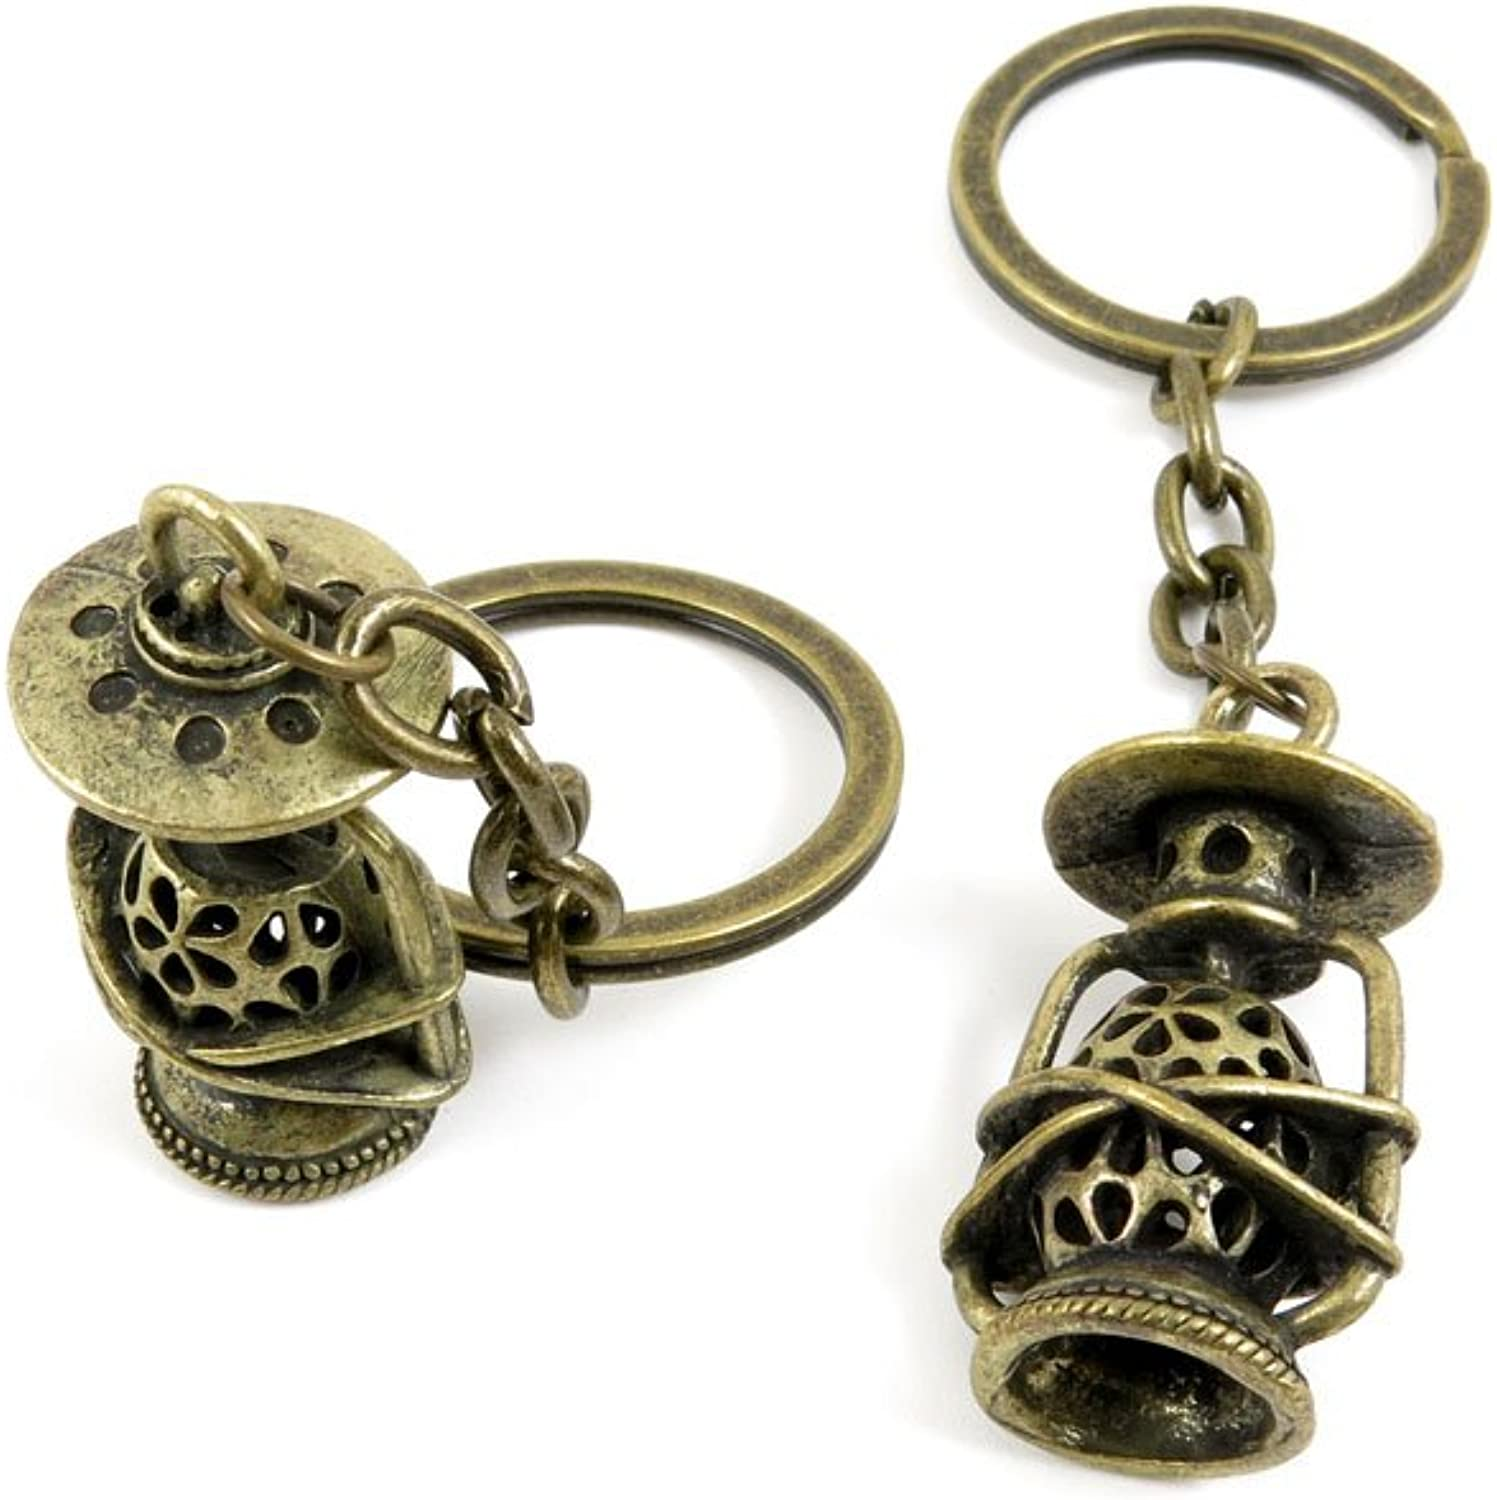 70 Pieces Fashion Jewelry Keyring Keychain Door Car Key Tag Ring Chain Supplier Supply Wholesale Bulk Lots L5RO4 Hollow Lantern